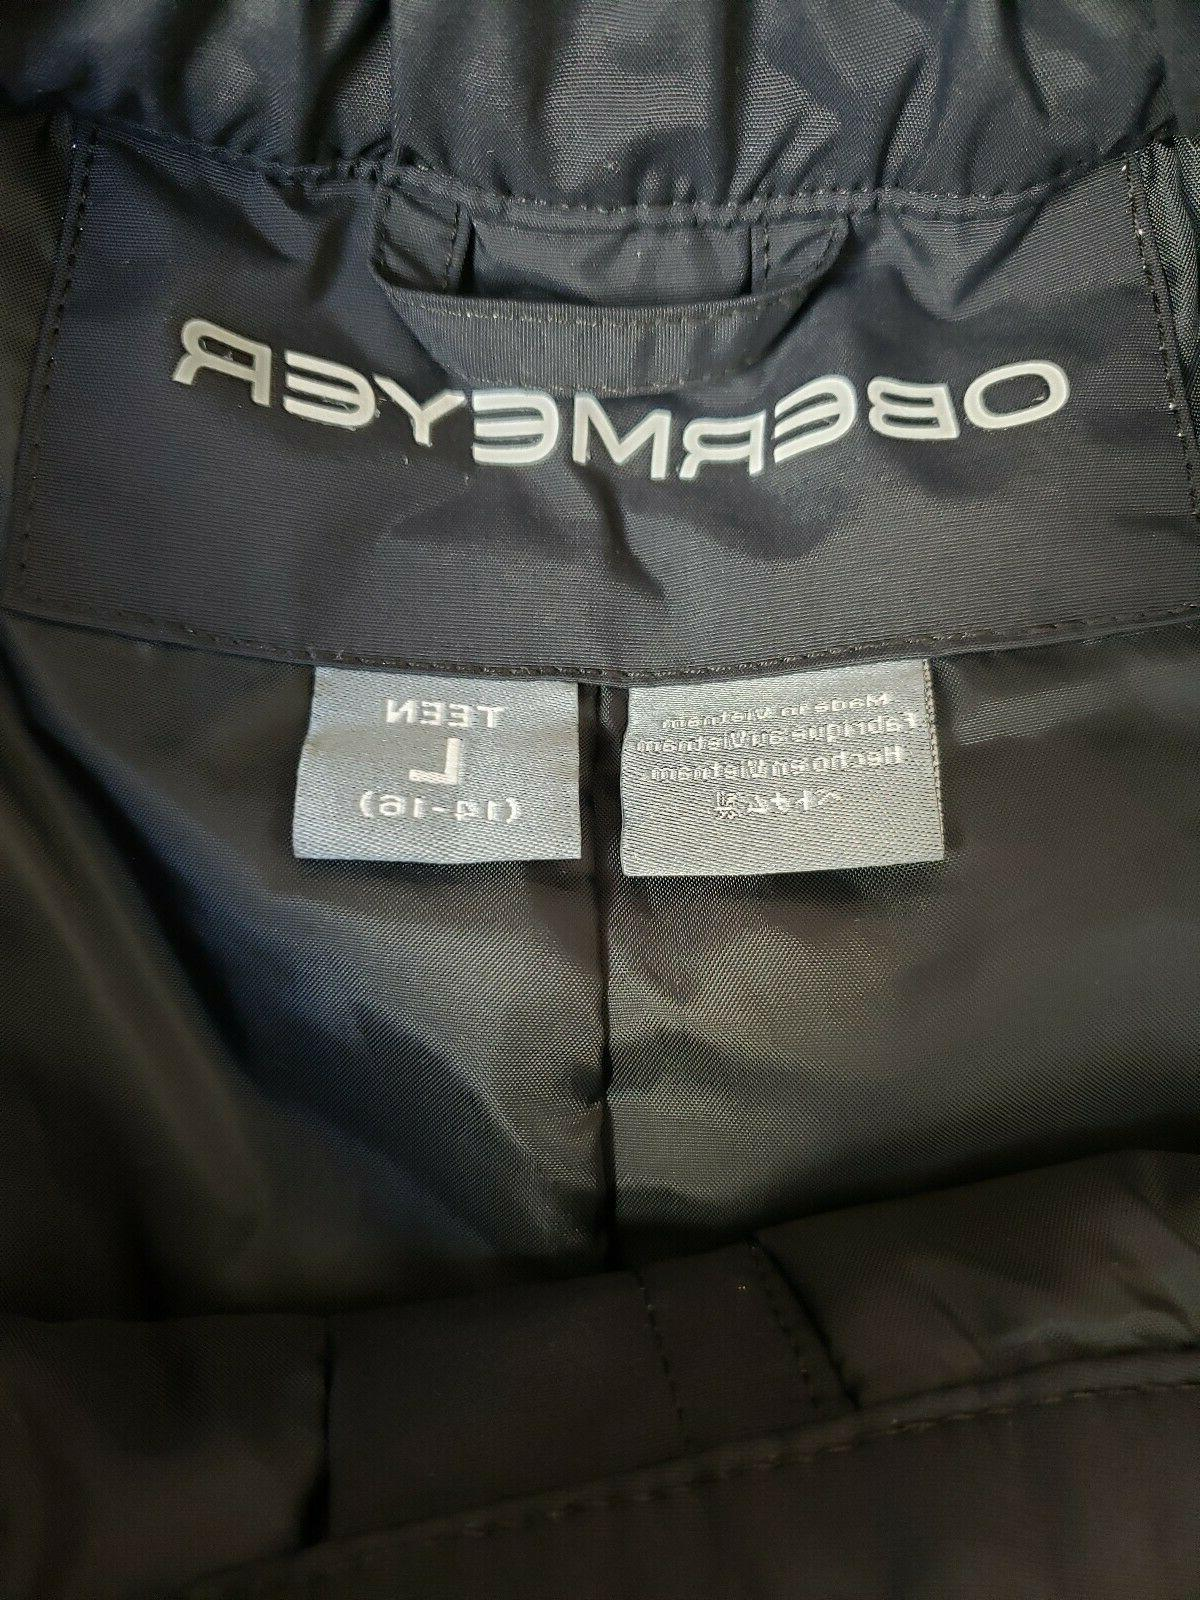 Girls Youth Snowboard Pants Teen Size 14 -